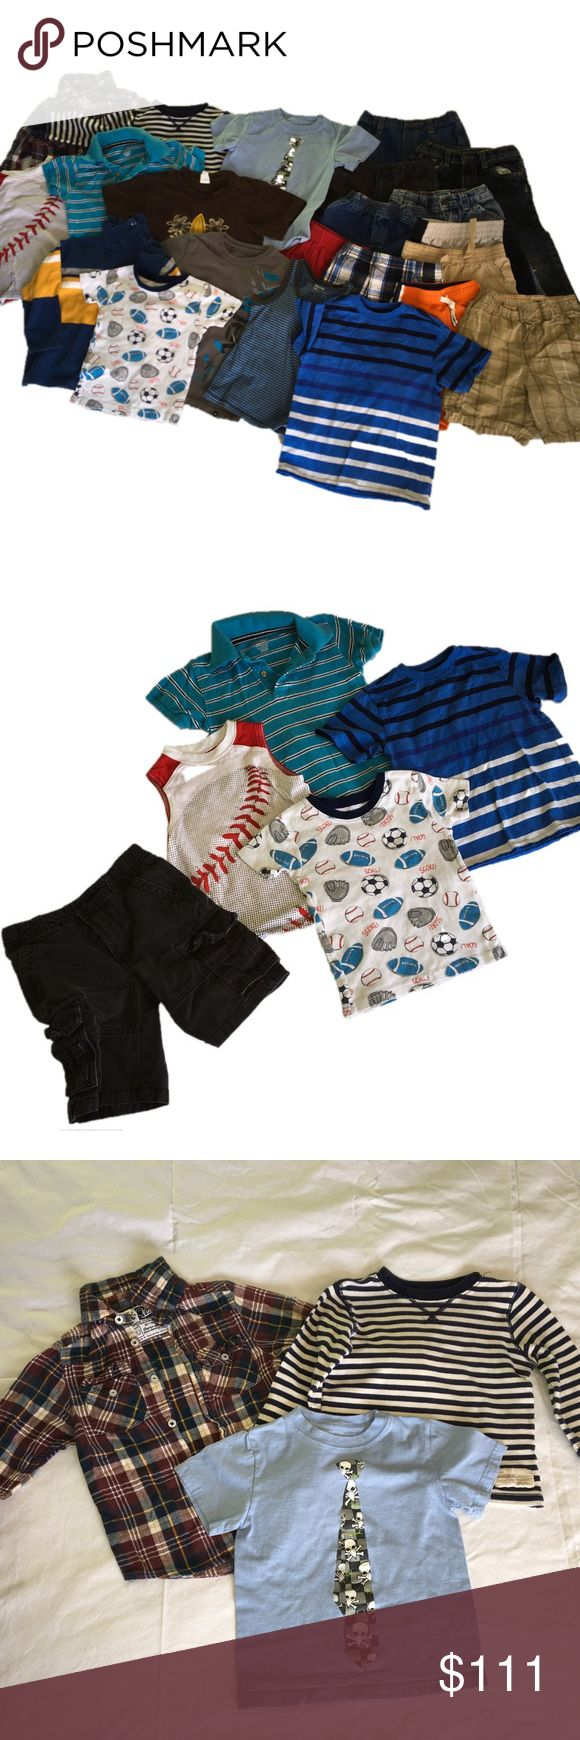 Boys 4T bundle-22 items! Tony Hawk, Michael Jordan All size 4 or 4T with one exception - the blue stripped shirt is a 4/5.  Great brand names - Garanimals, Cherokee, Carter's, Michael Jordan grey shorts, Genuine Kids from Oshkosh, Old Navy, Osh Kosh b'gosh, Tony Hawk, US Polo Adan Jeans, Little Rebels, Vintage Classic Clothing Co, Hurley, Baby Gap, The Children's Place, & Healthtex. MJ shorts has small pull on one side. Matching Sets